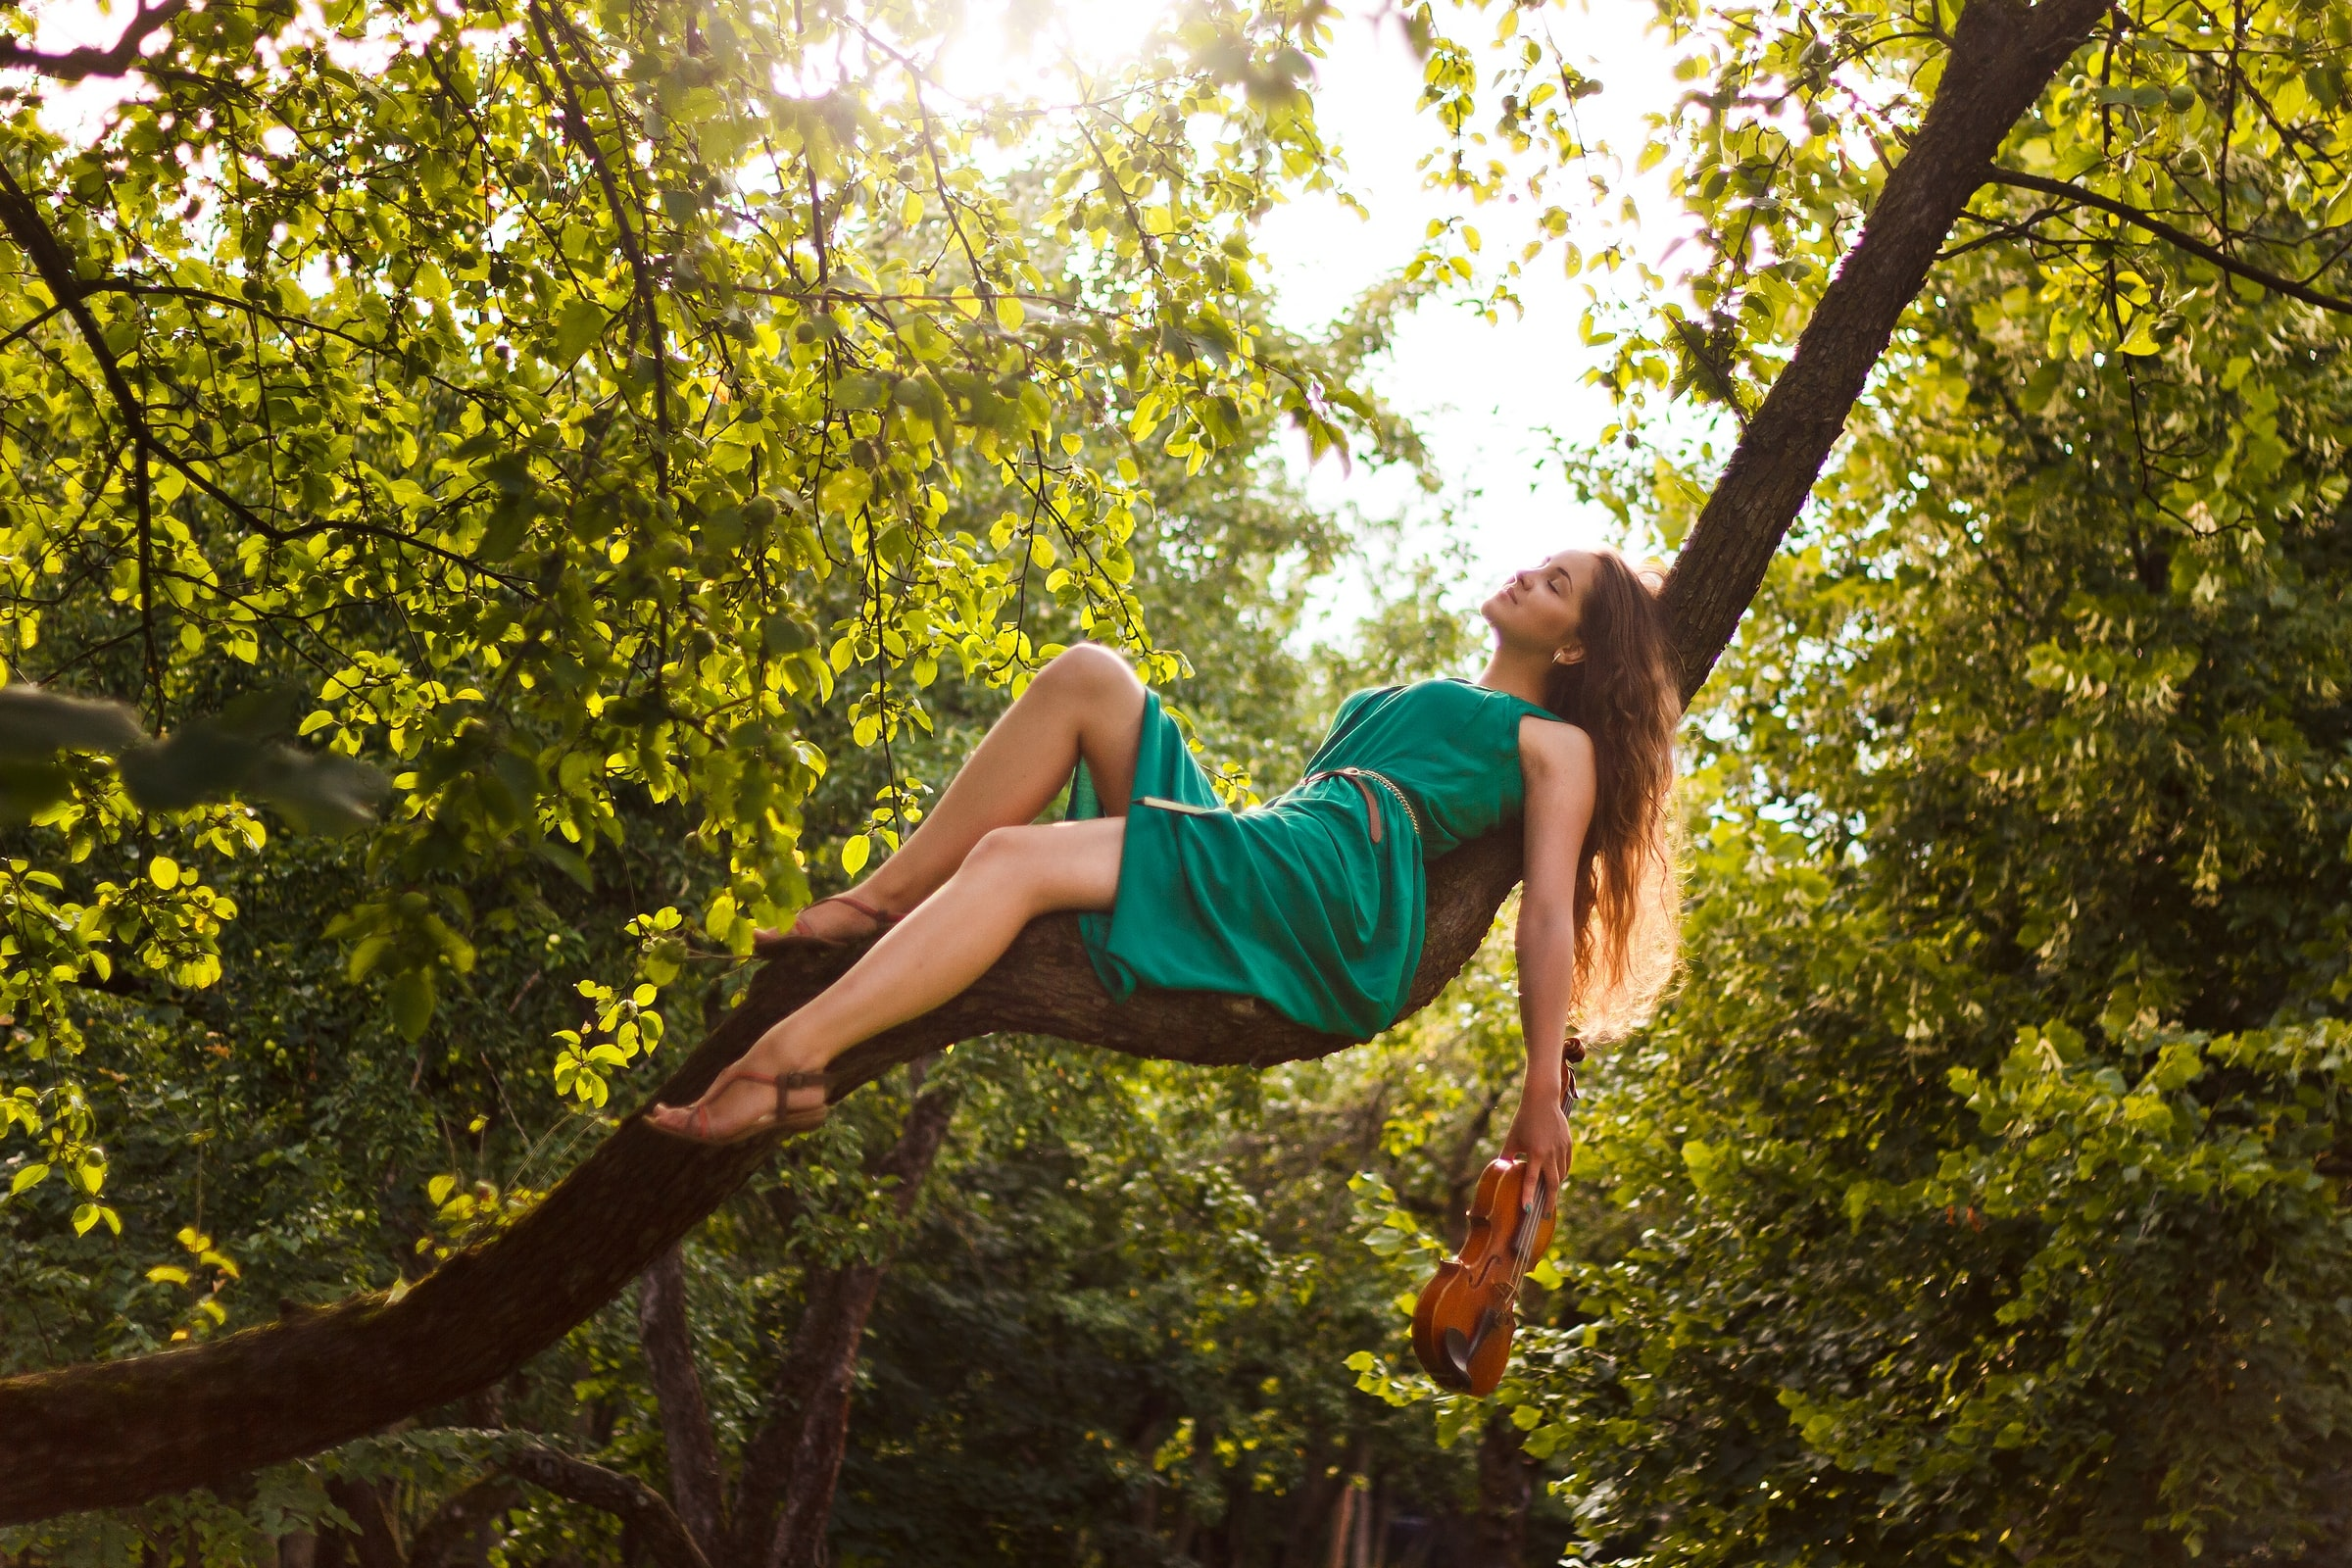 Woman laying on a tree branch on a sunny day